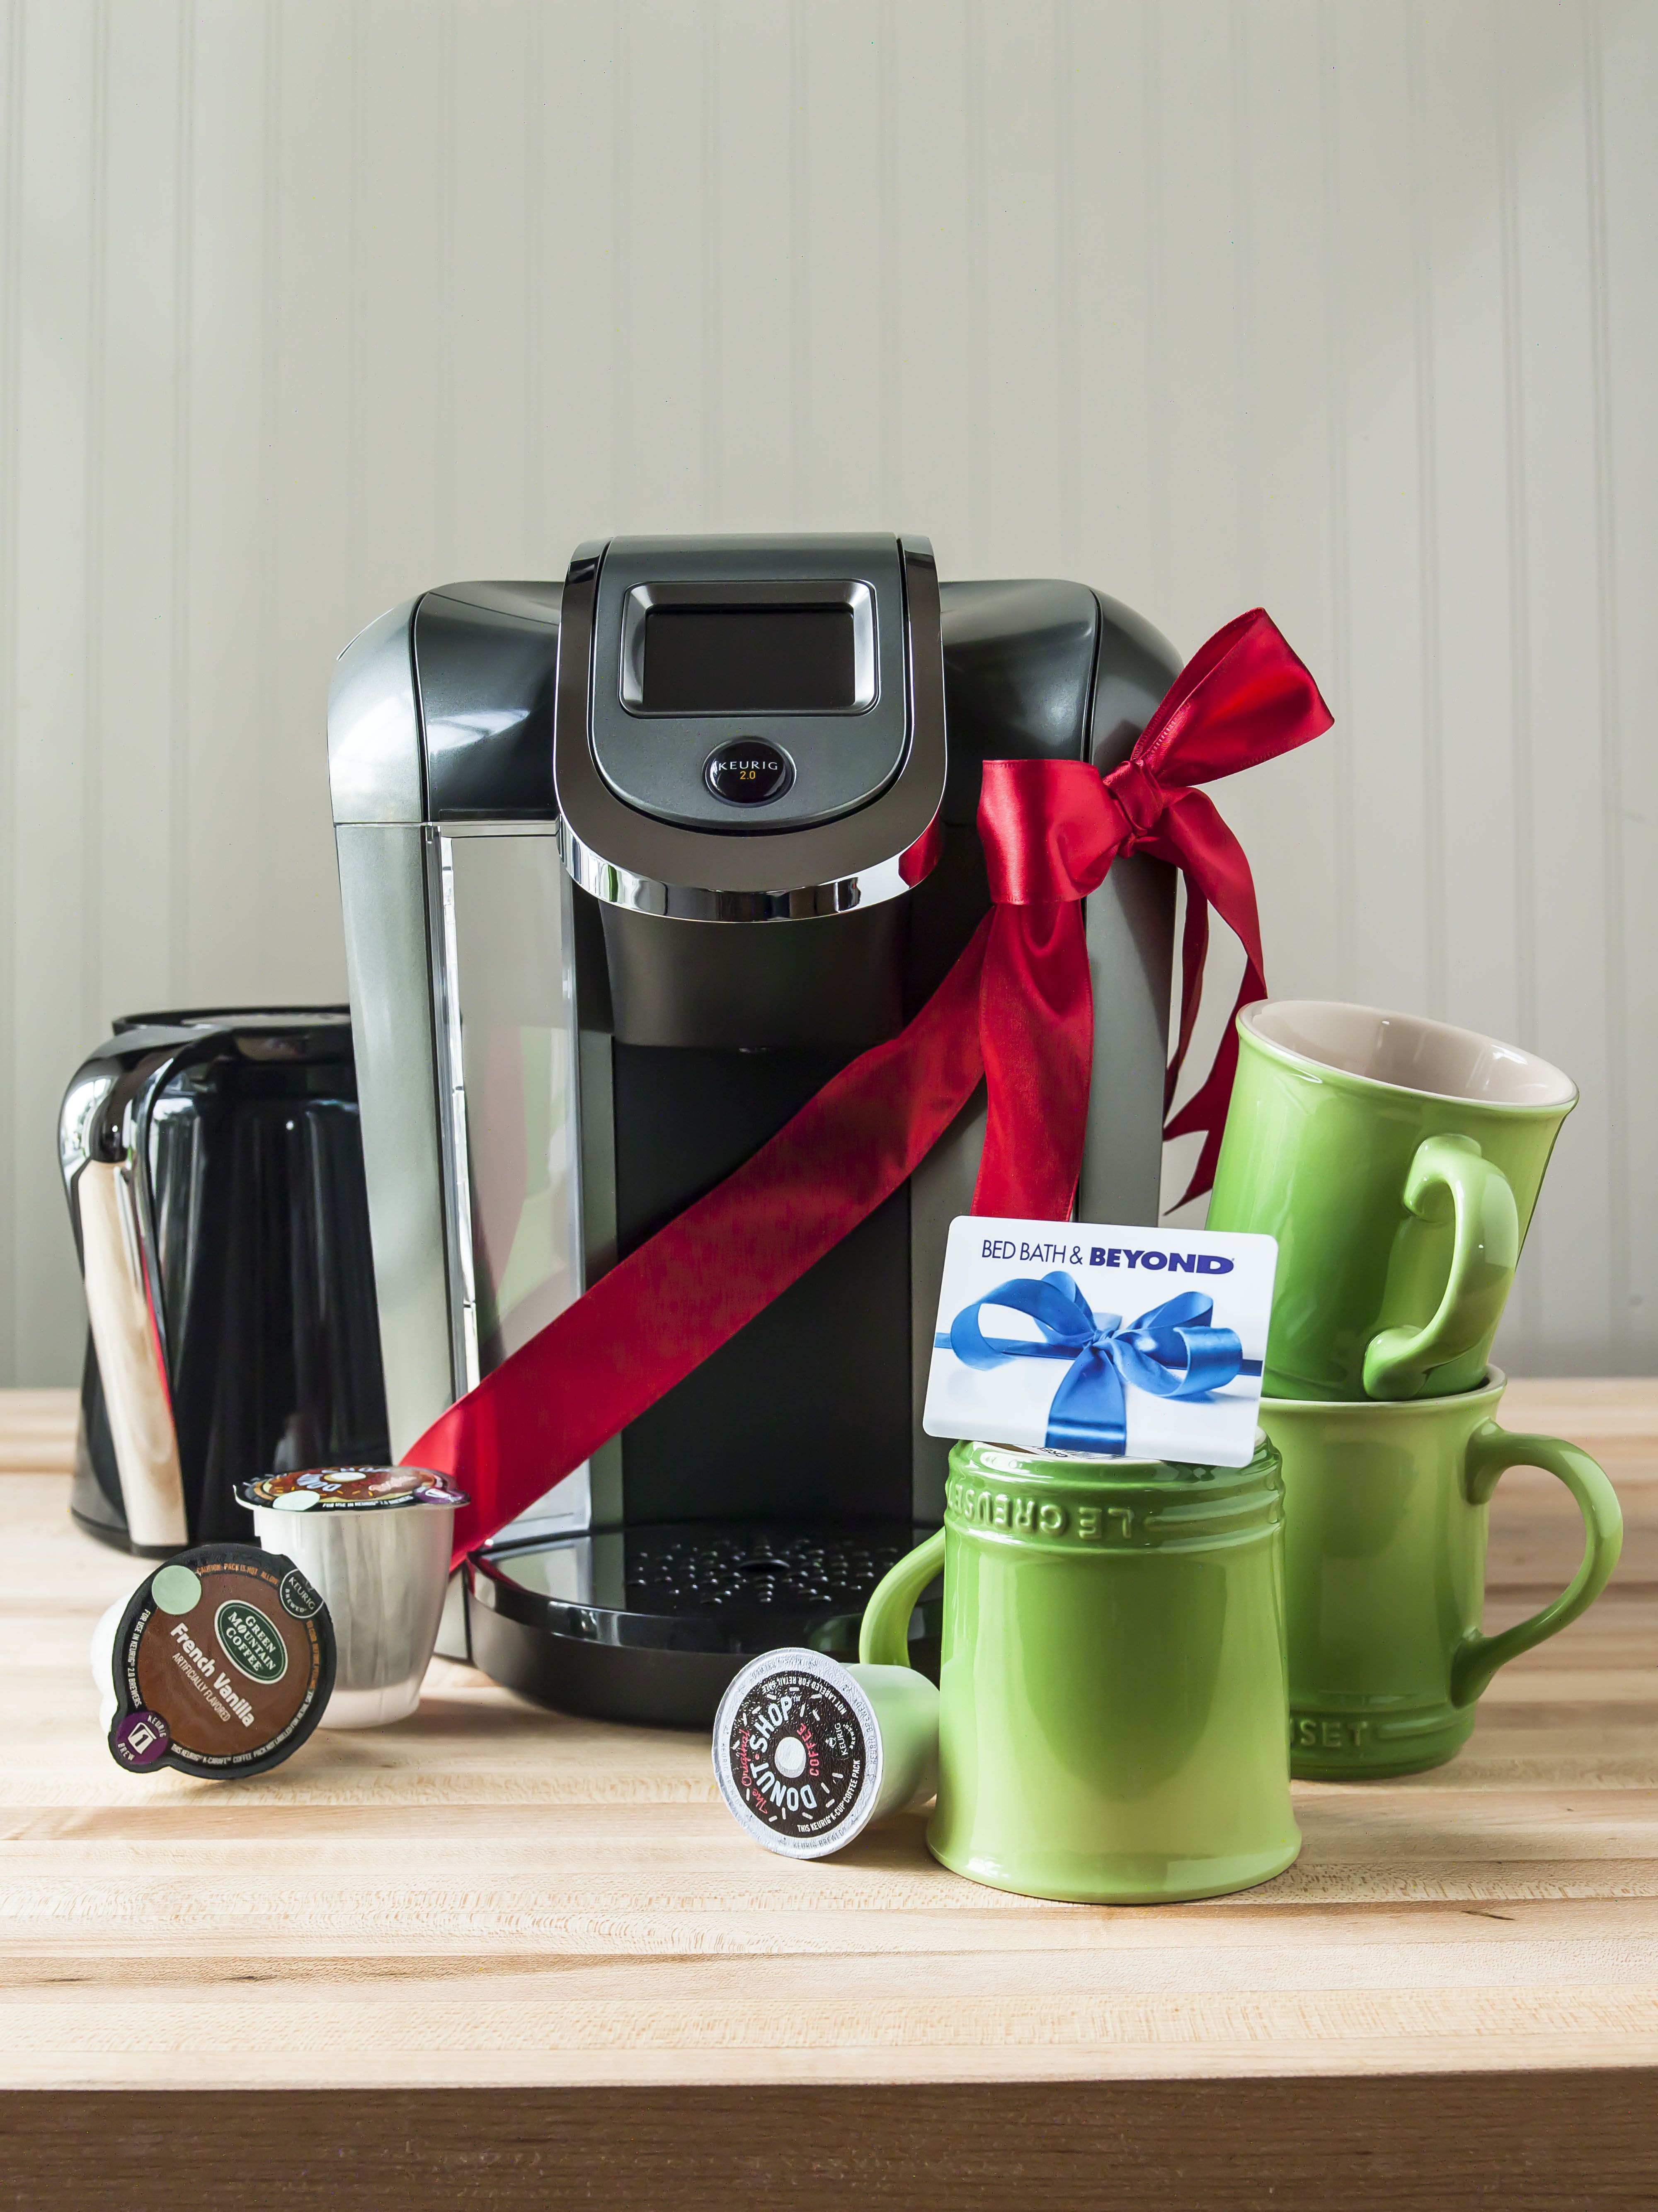 For the coffee drinker Top off your perfect gift by